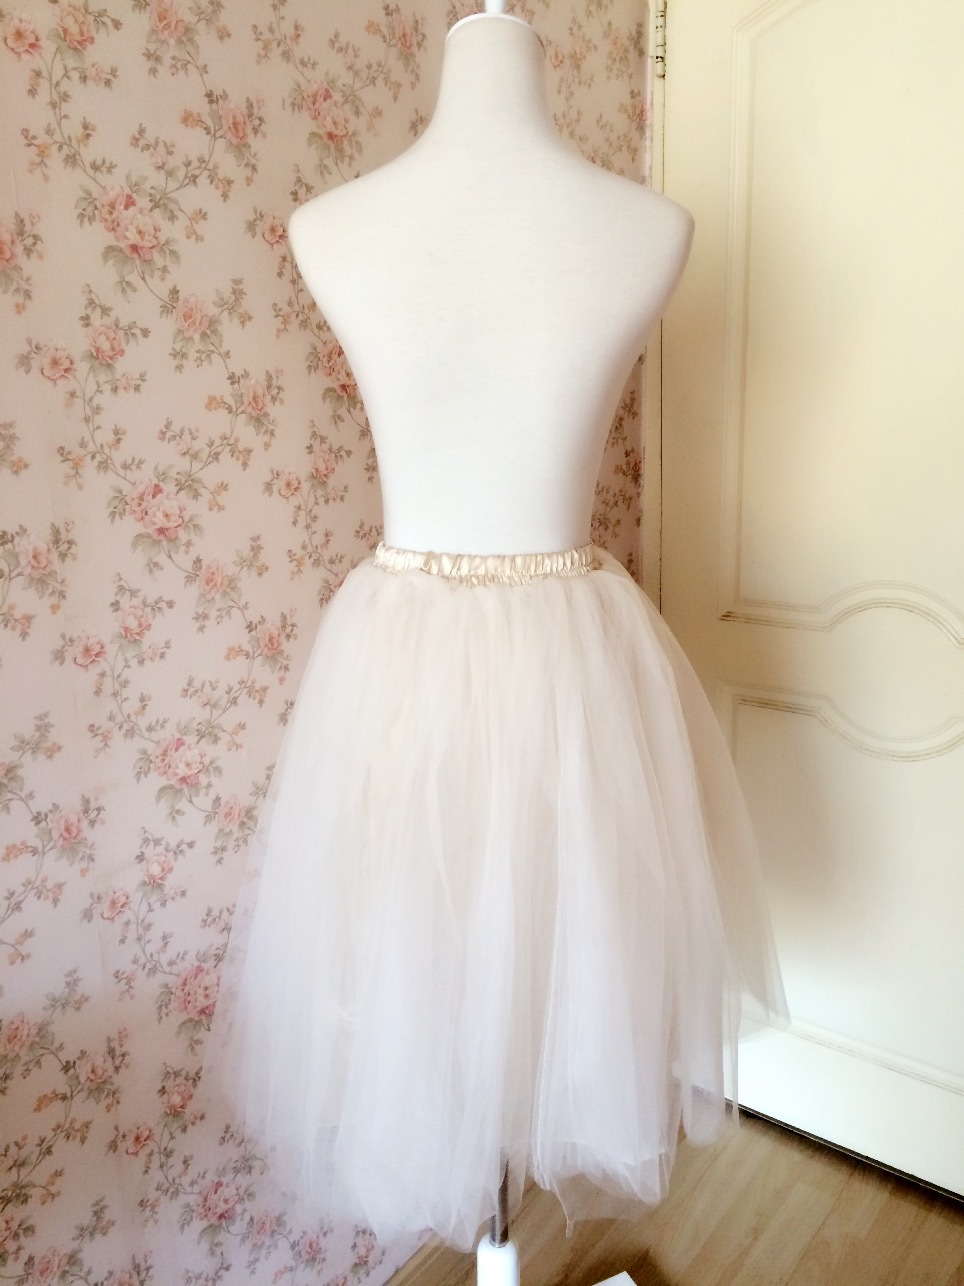 Women Ivory Tea Length Tulle Skirt Ivory Wedding Bridesmaid Midi Tulle Skirts